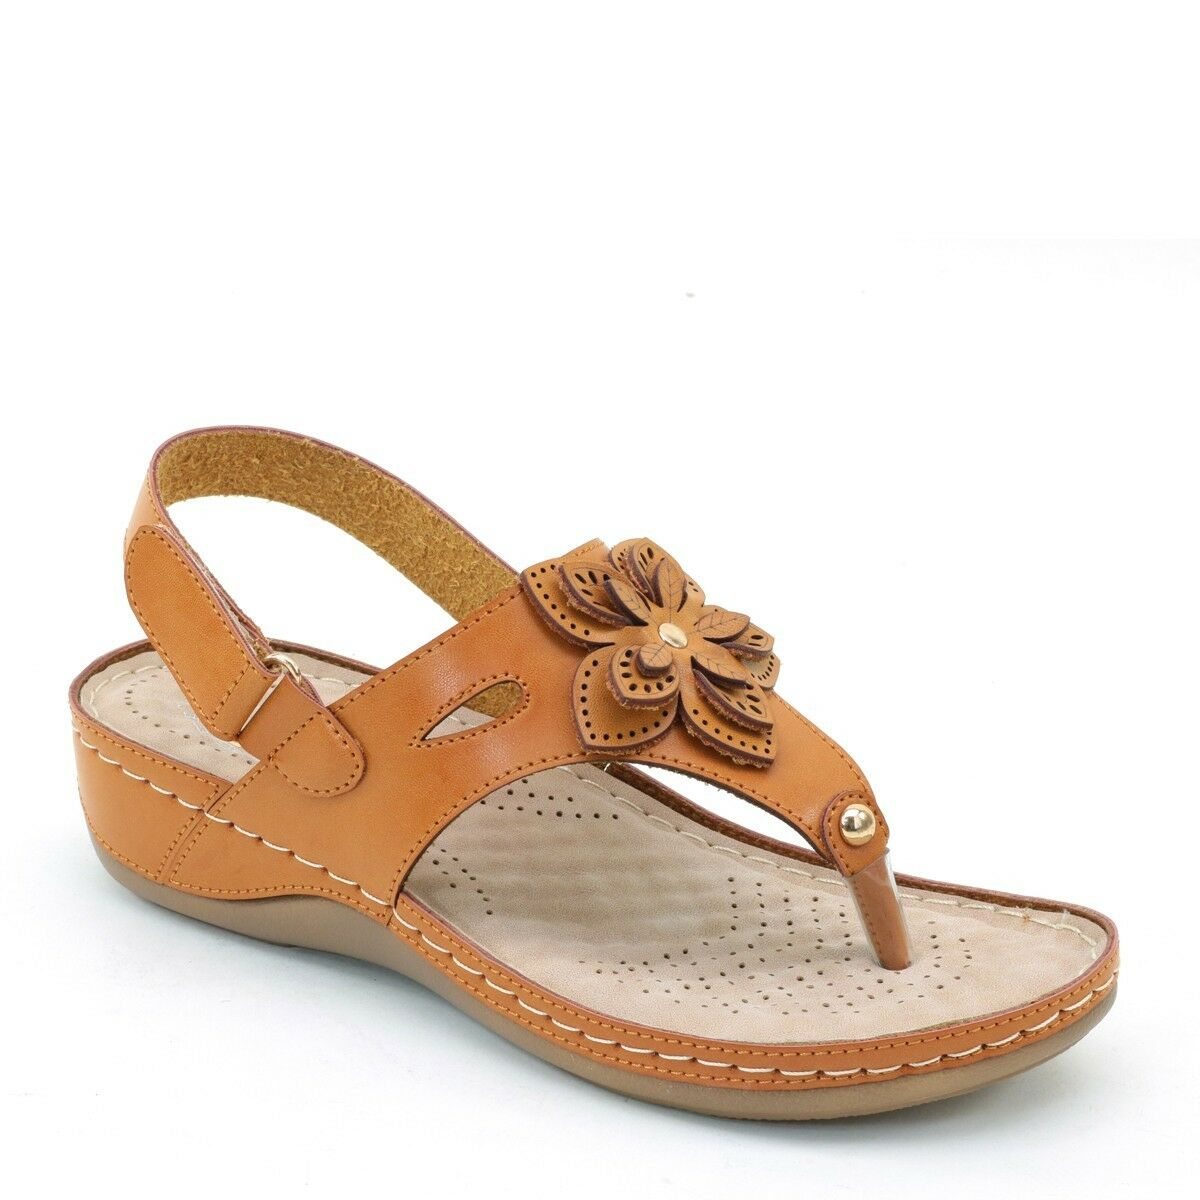 Rio Comfort Sandals-6751-Black-camel-Memory Foam Footbed On sale Now For  32.00